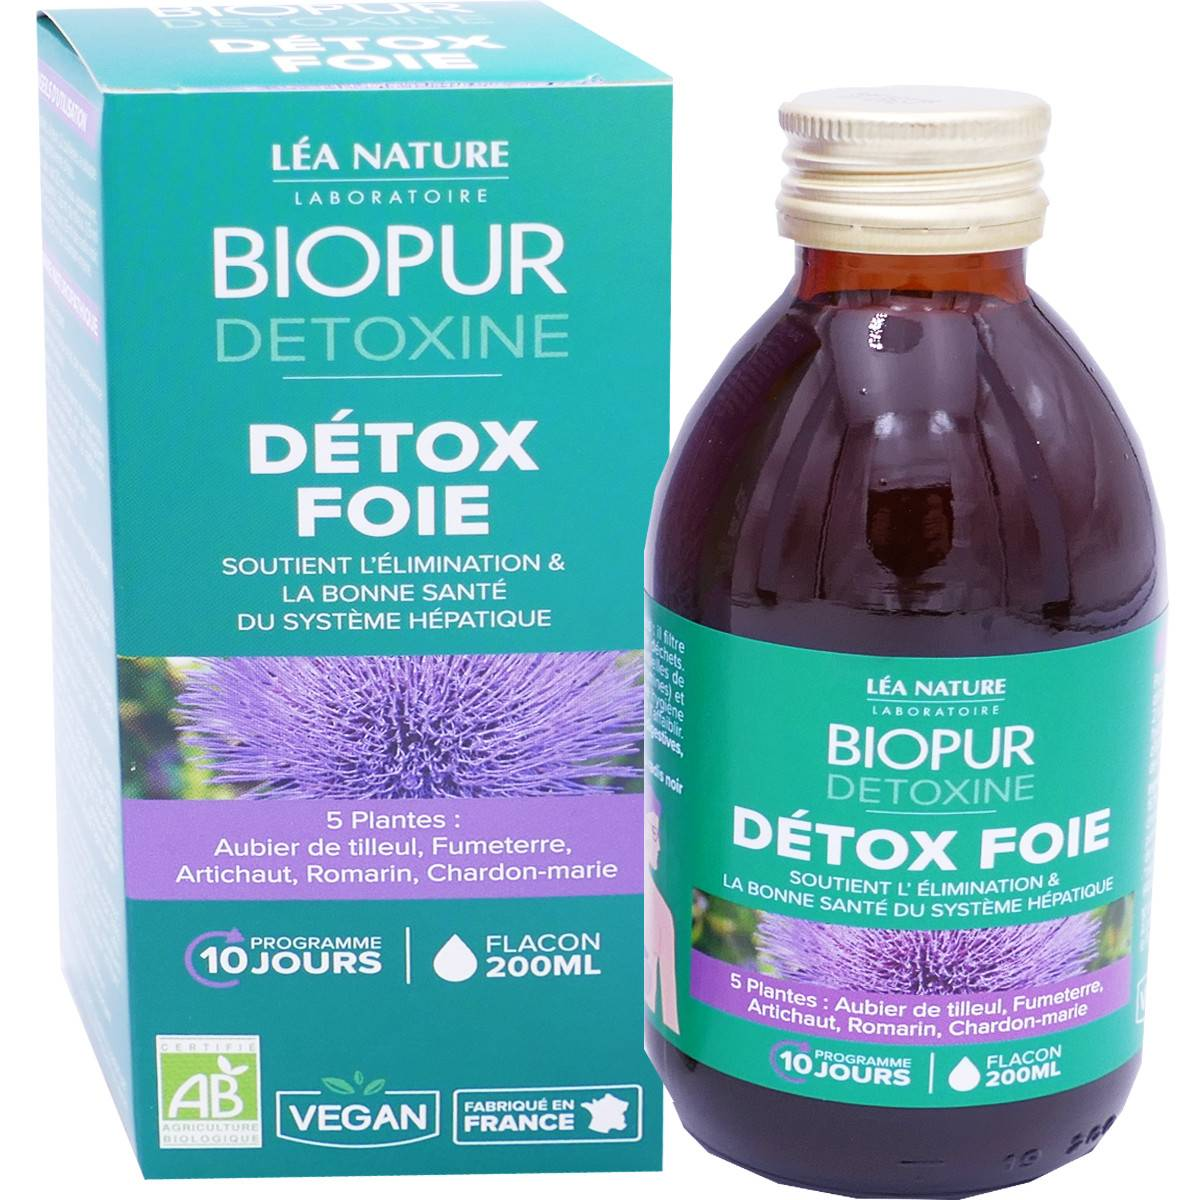 LEA NATURE Biopur detox foie 200 ml bio